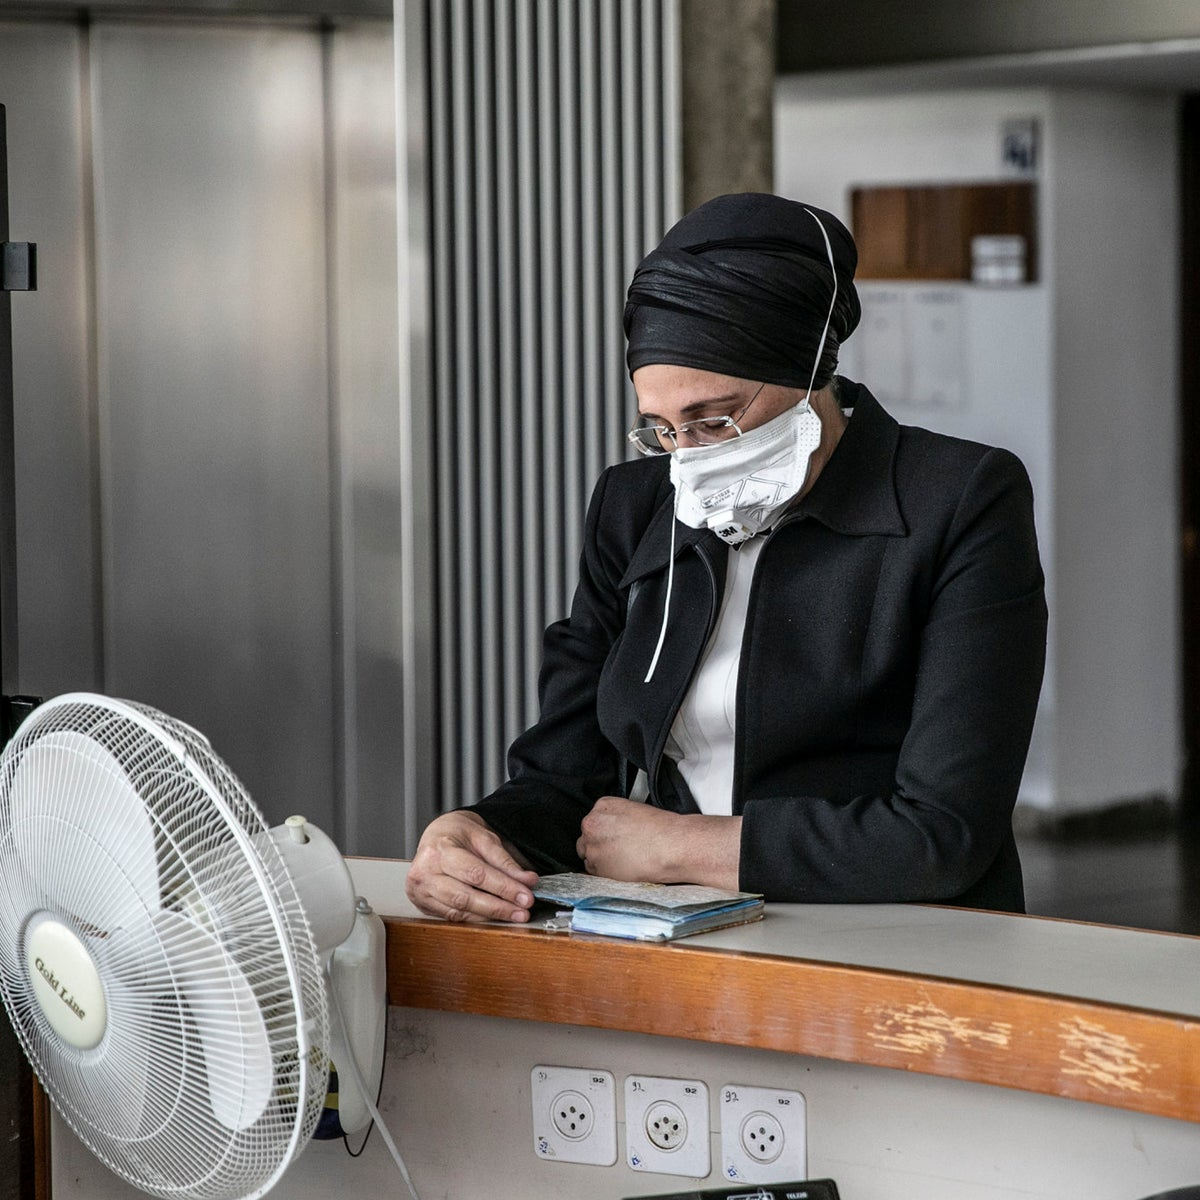 Liza Dermer, a Hidabroot employee facing privacy violations charges after contacting pregnant women to convince them not to abort, at the Tel Aviv Magistrate's Court, May 2020.